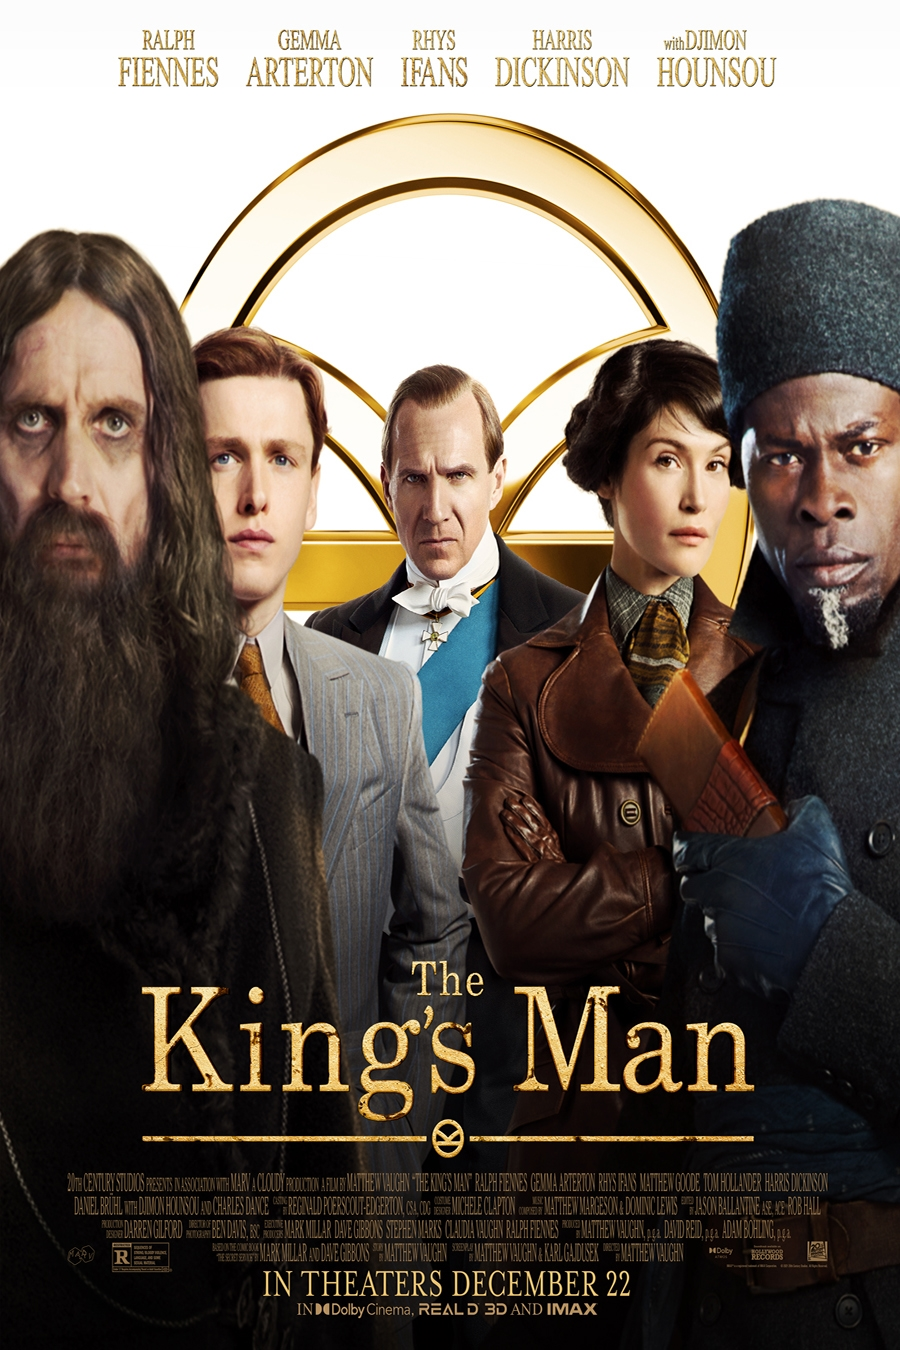 Poster for The King's Man